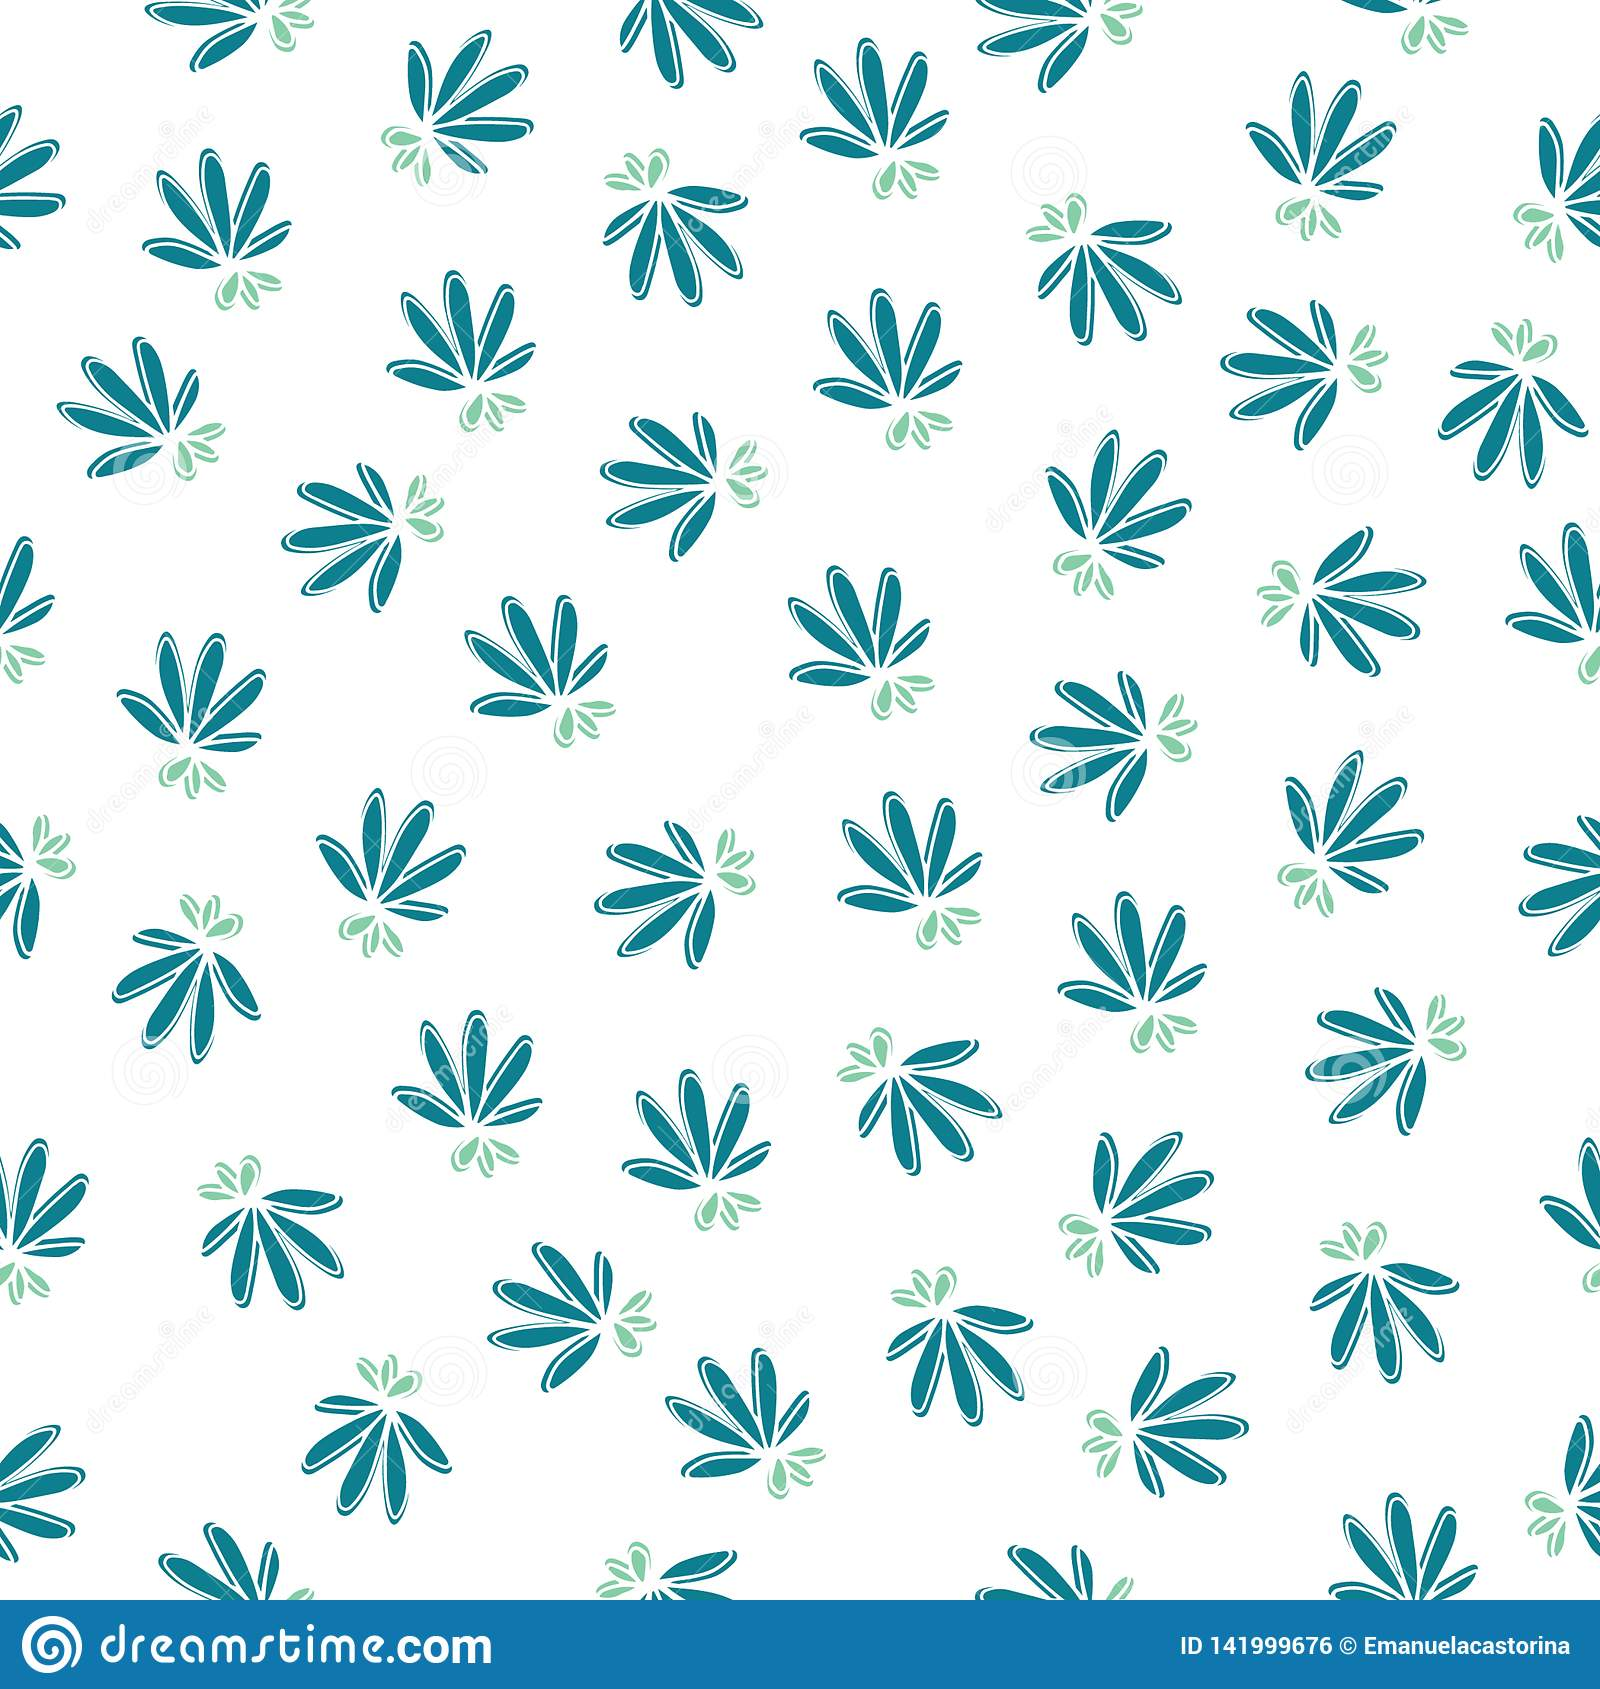 Simple seamless floral pattern